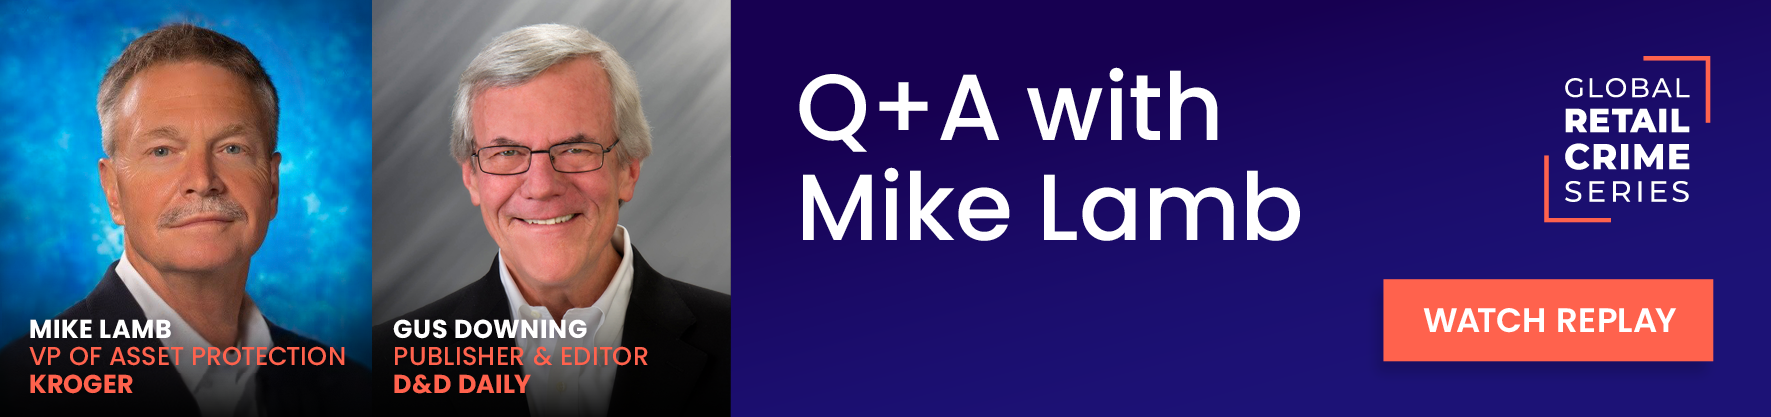 Q & A with Mike Lamb